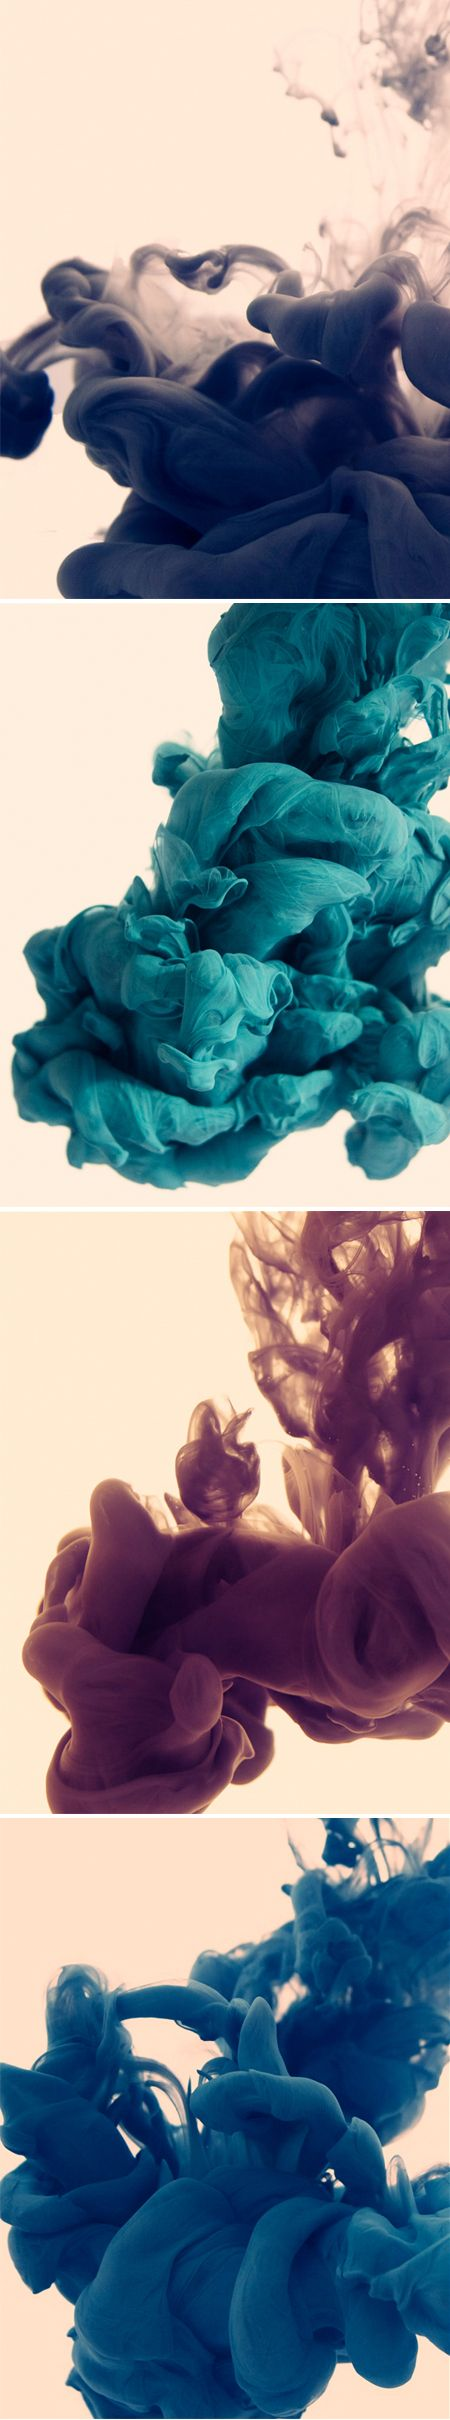 Ink In Water Photograph By Alberto Seveso Fun Artsy - New incredible underwater ink photographs alberto seveso